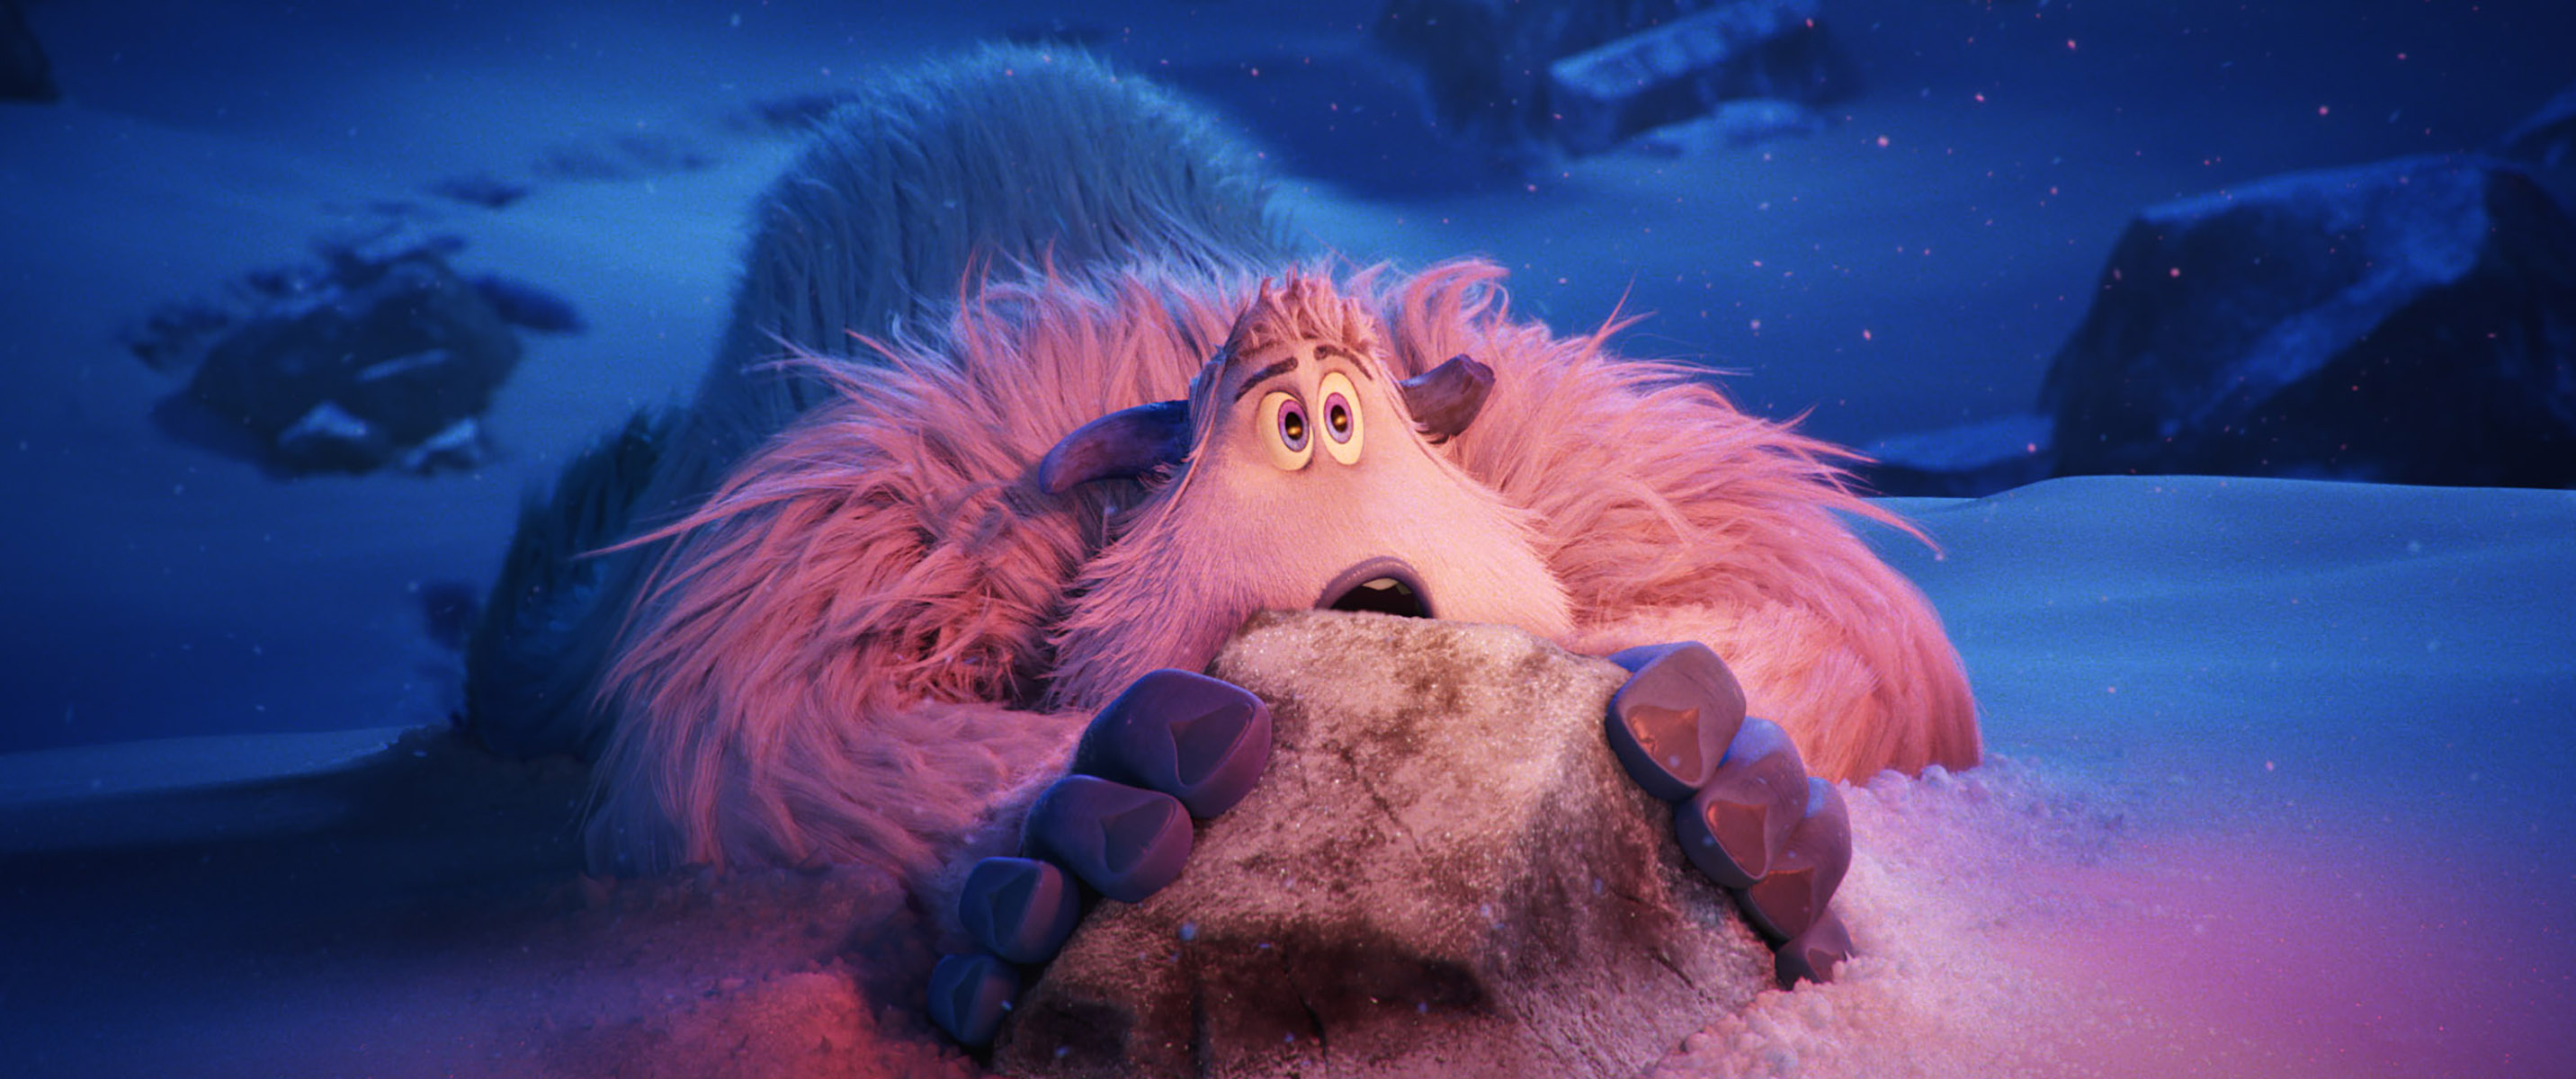 Smallfoot Gallery 5